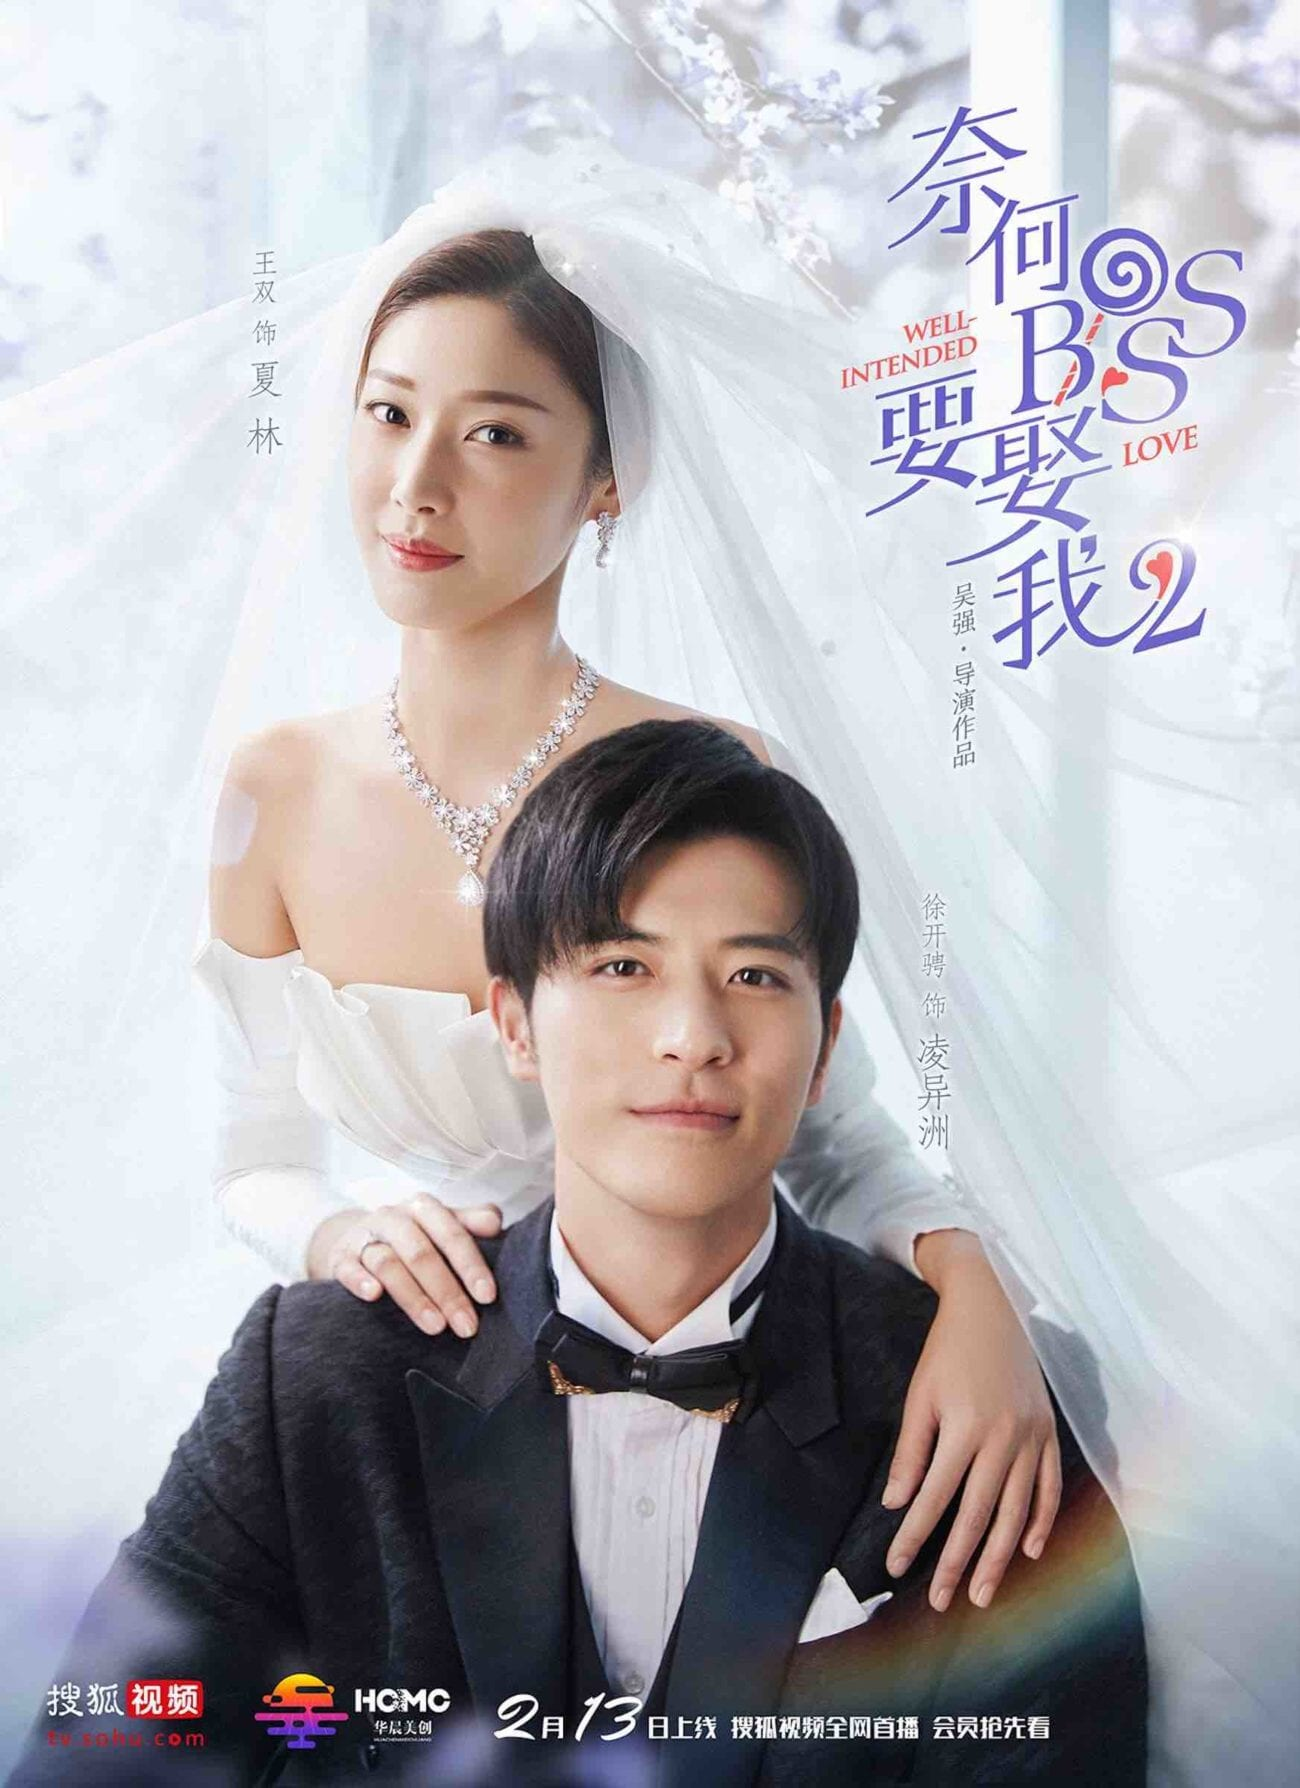 It's been 2020 for a while now, but fans are still praising 'Well Intended Love'. Here's why 'Well Intended Love' is the C-drama everyone needs.